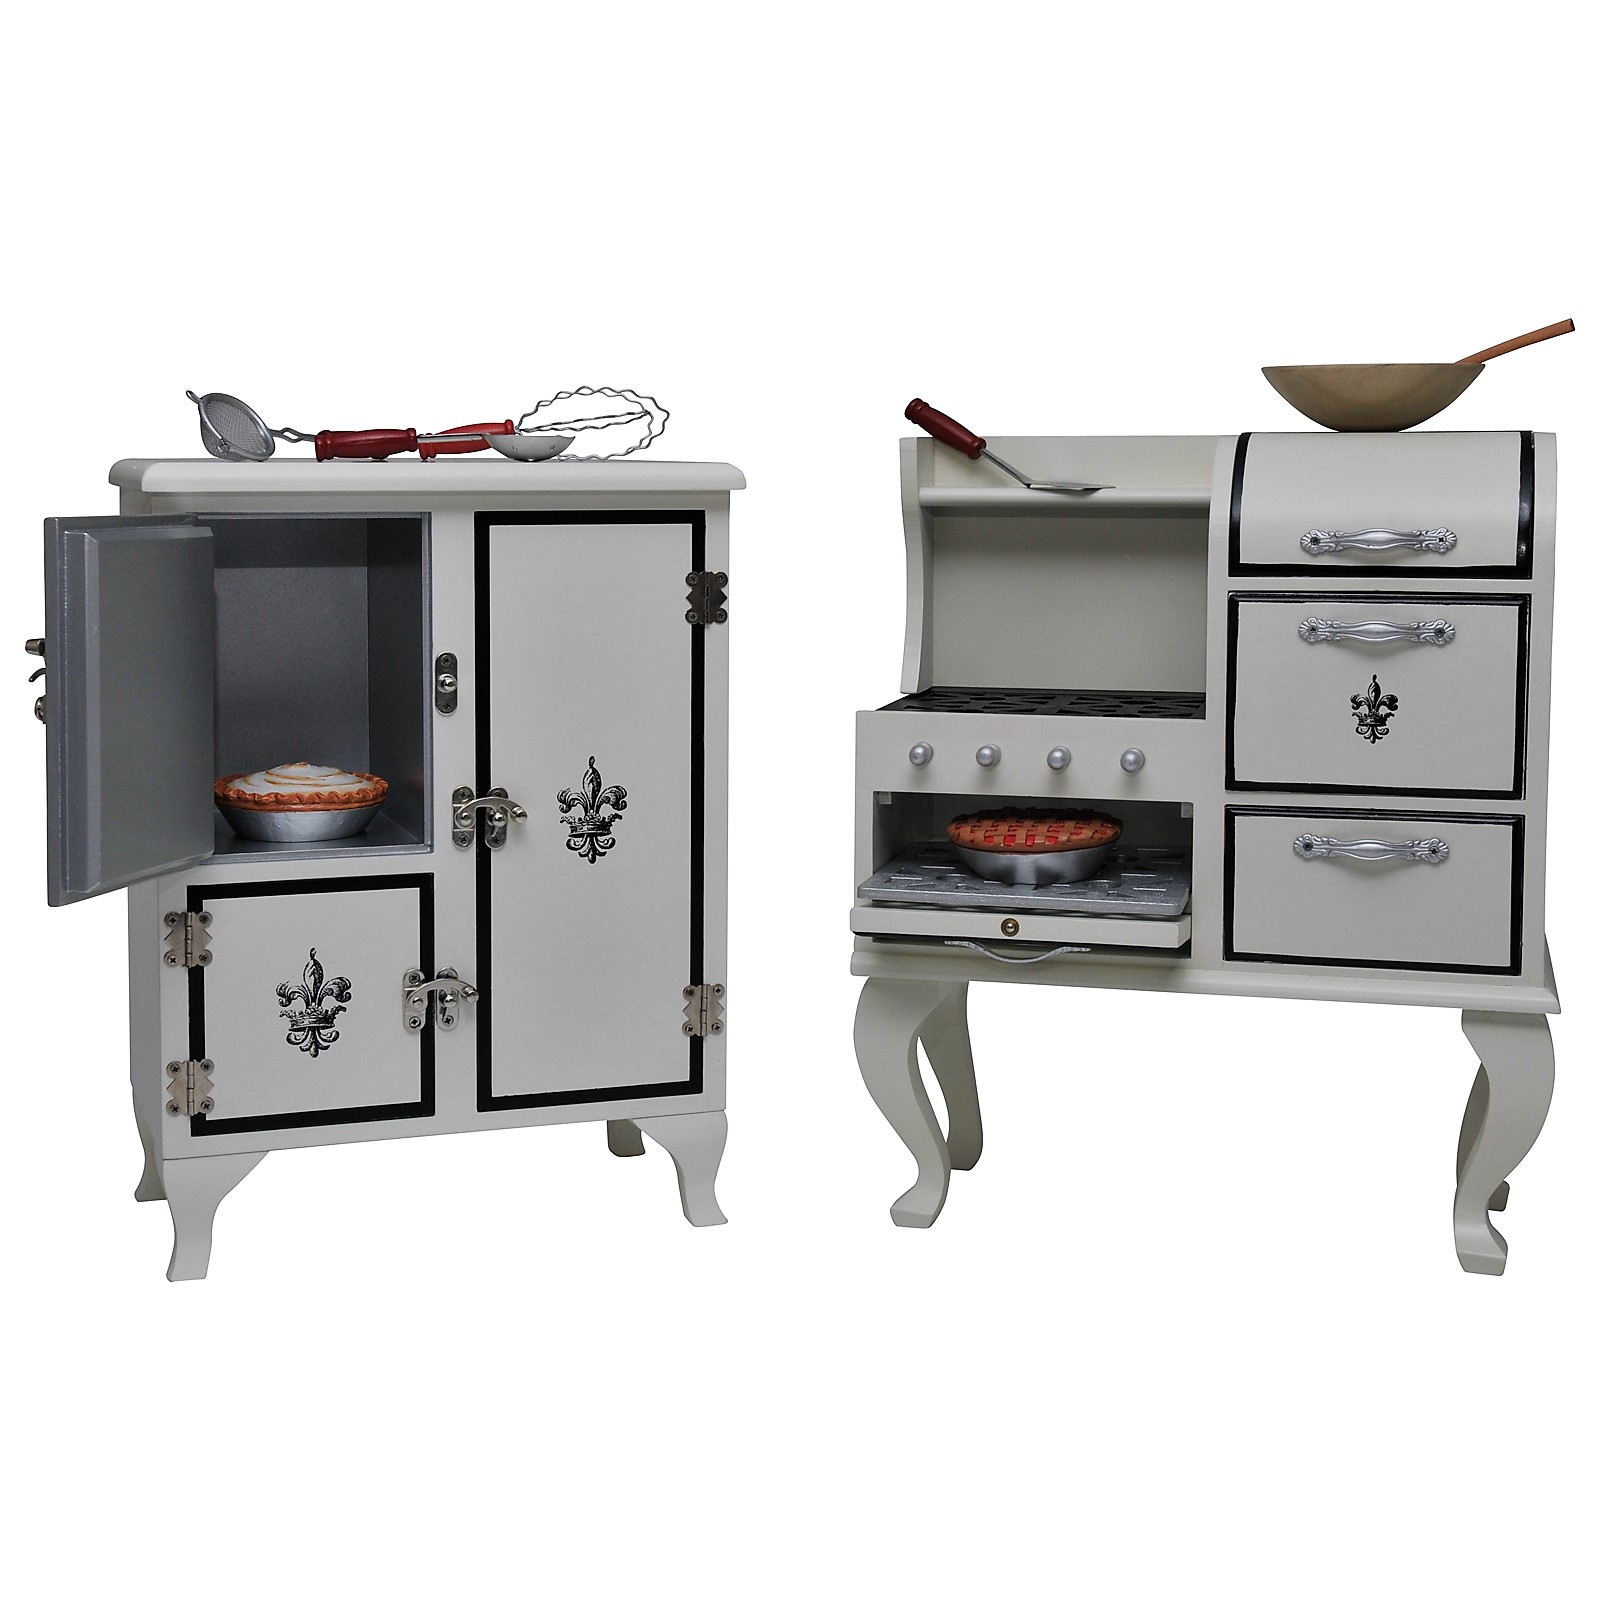 The Queen's Treasures American Vintage Stove & Fridge Furniture + Kitchen Tool & Food Accessory Play Set for 18 Inch Girl Dolls